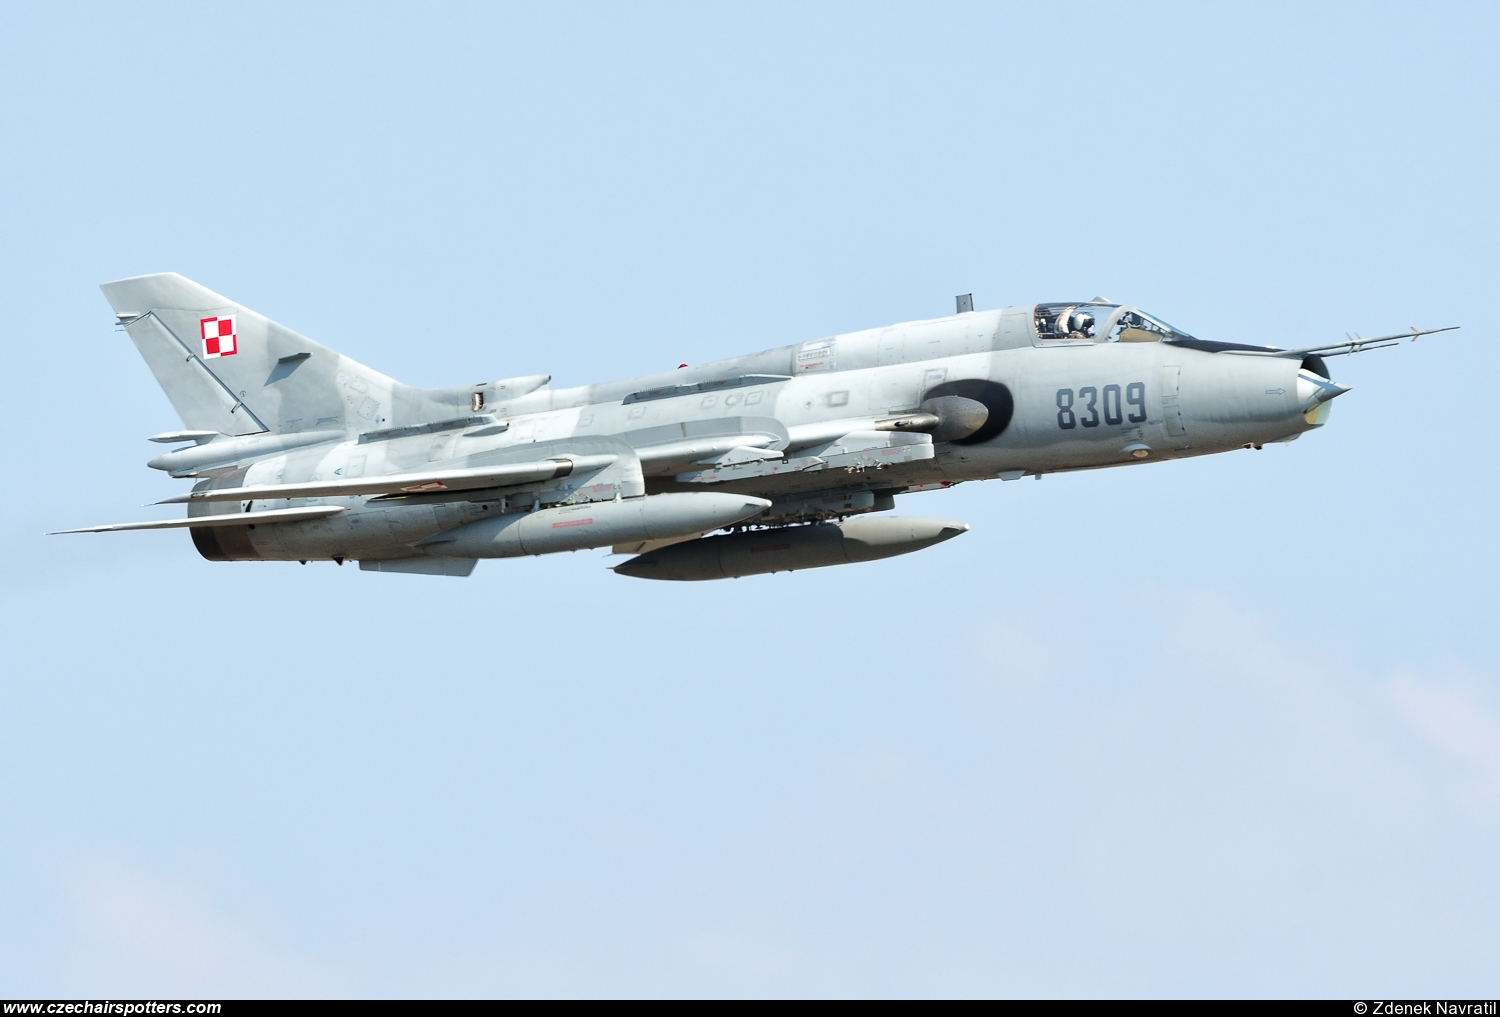 Poland - Air Force – Sukhoi Su-22 M-4 Fitter 8309